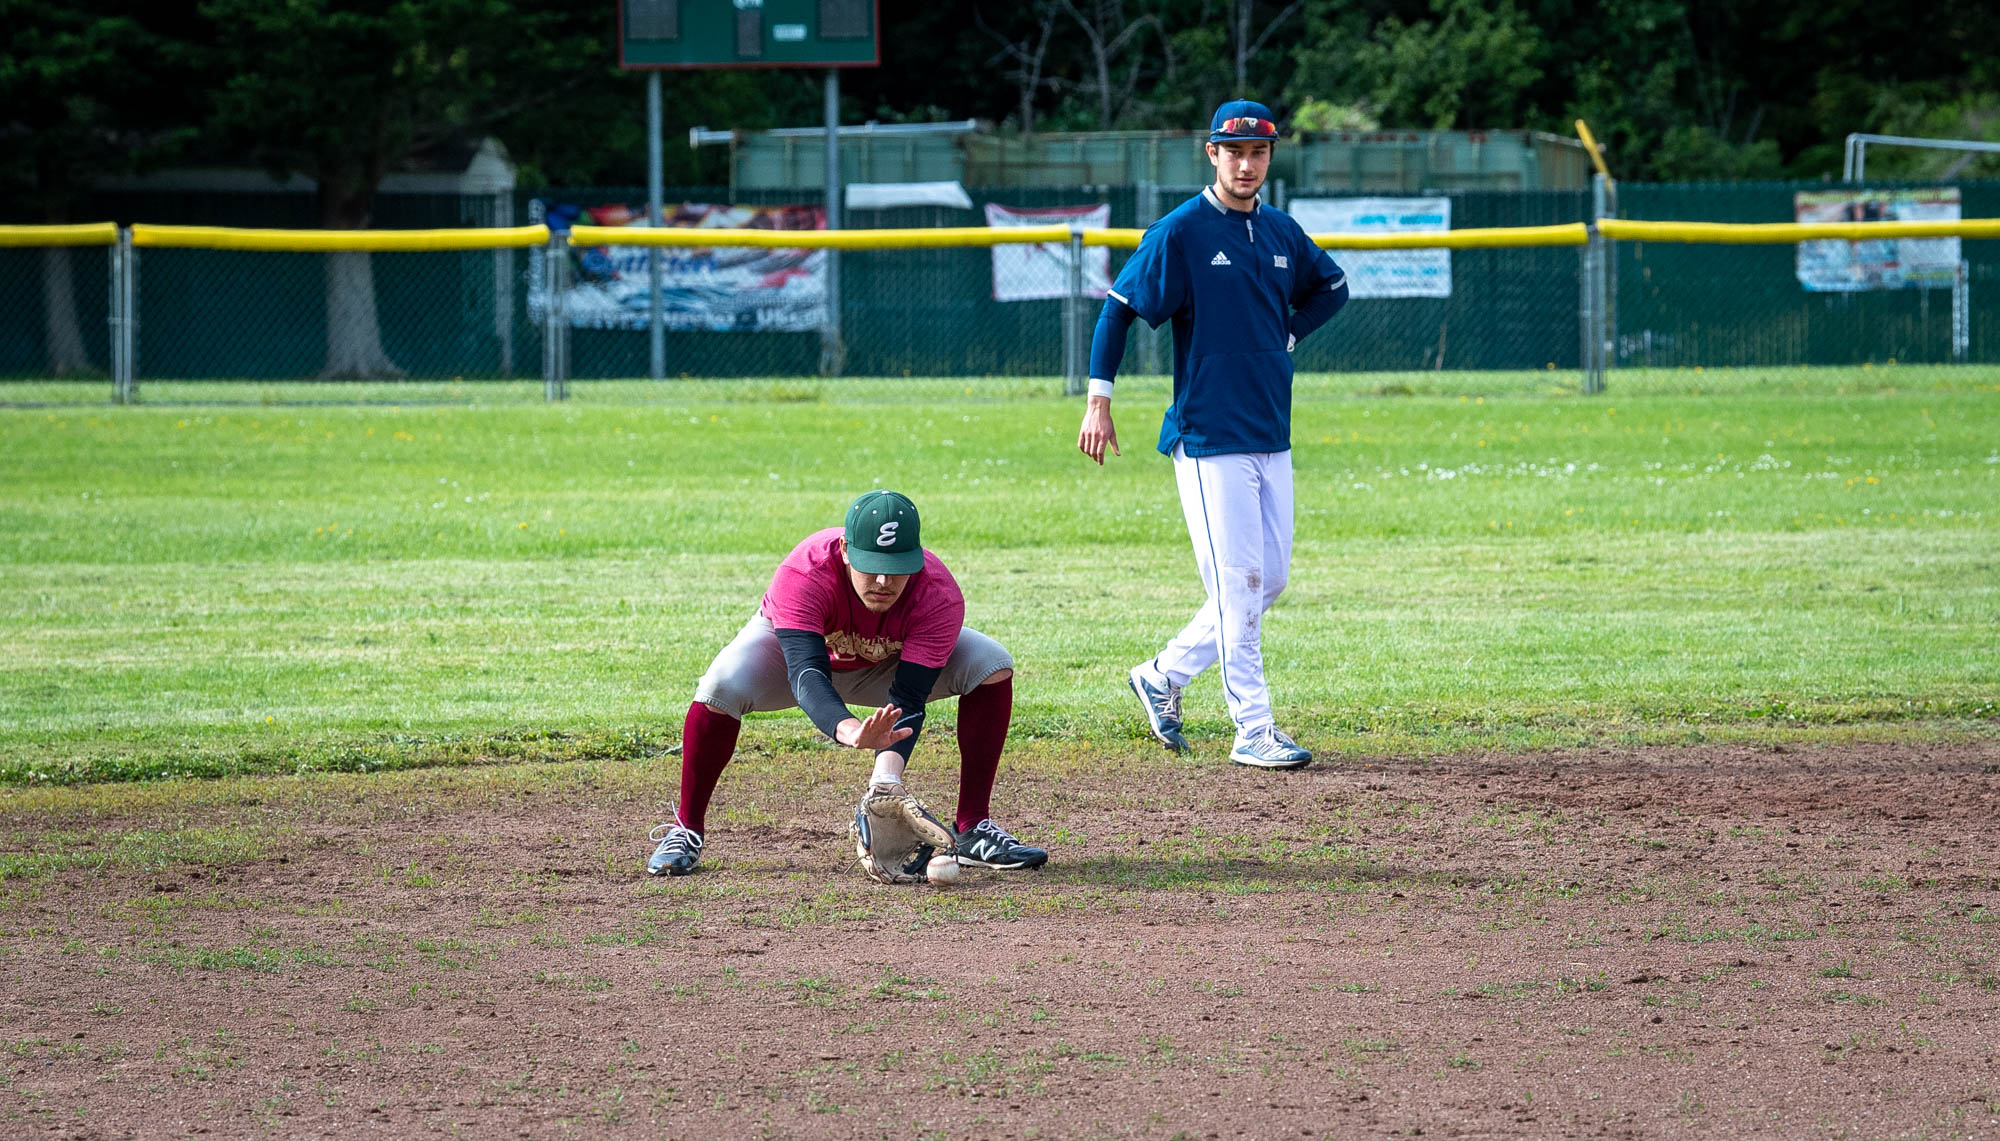 An Eagles hopeful fields a grounder during assessments at Redwood Fields.